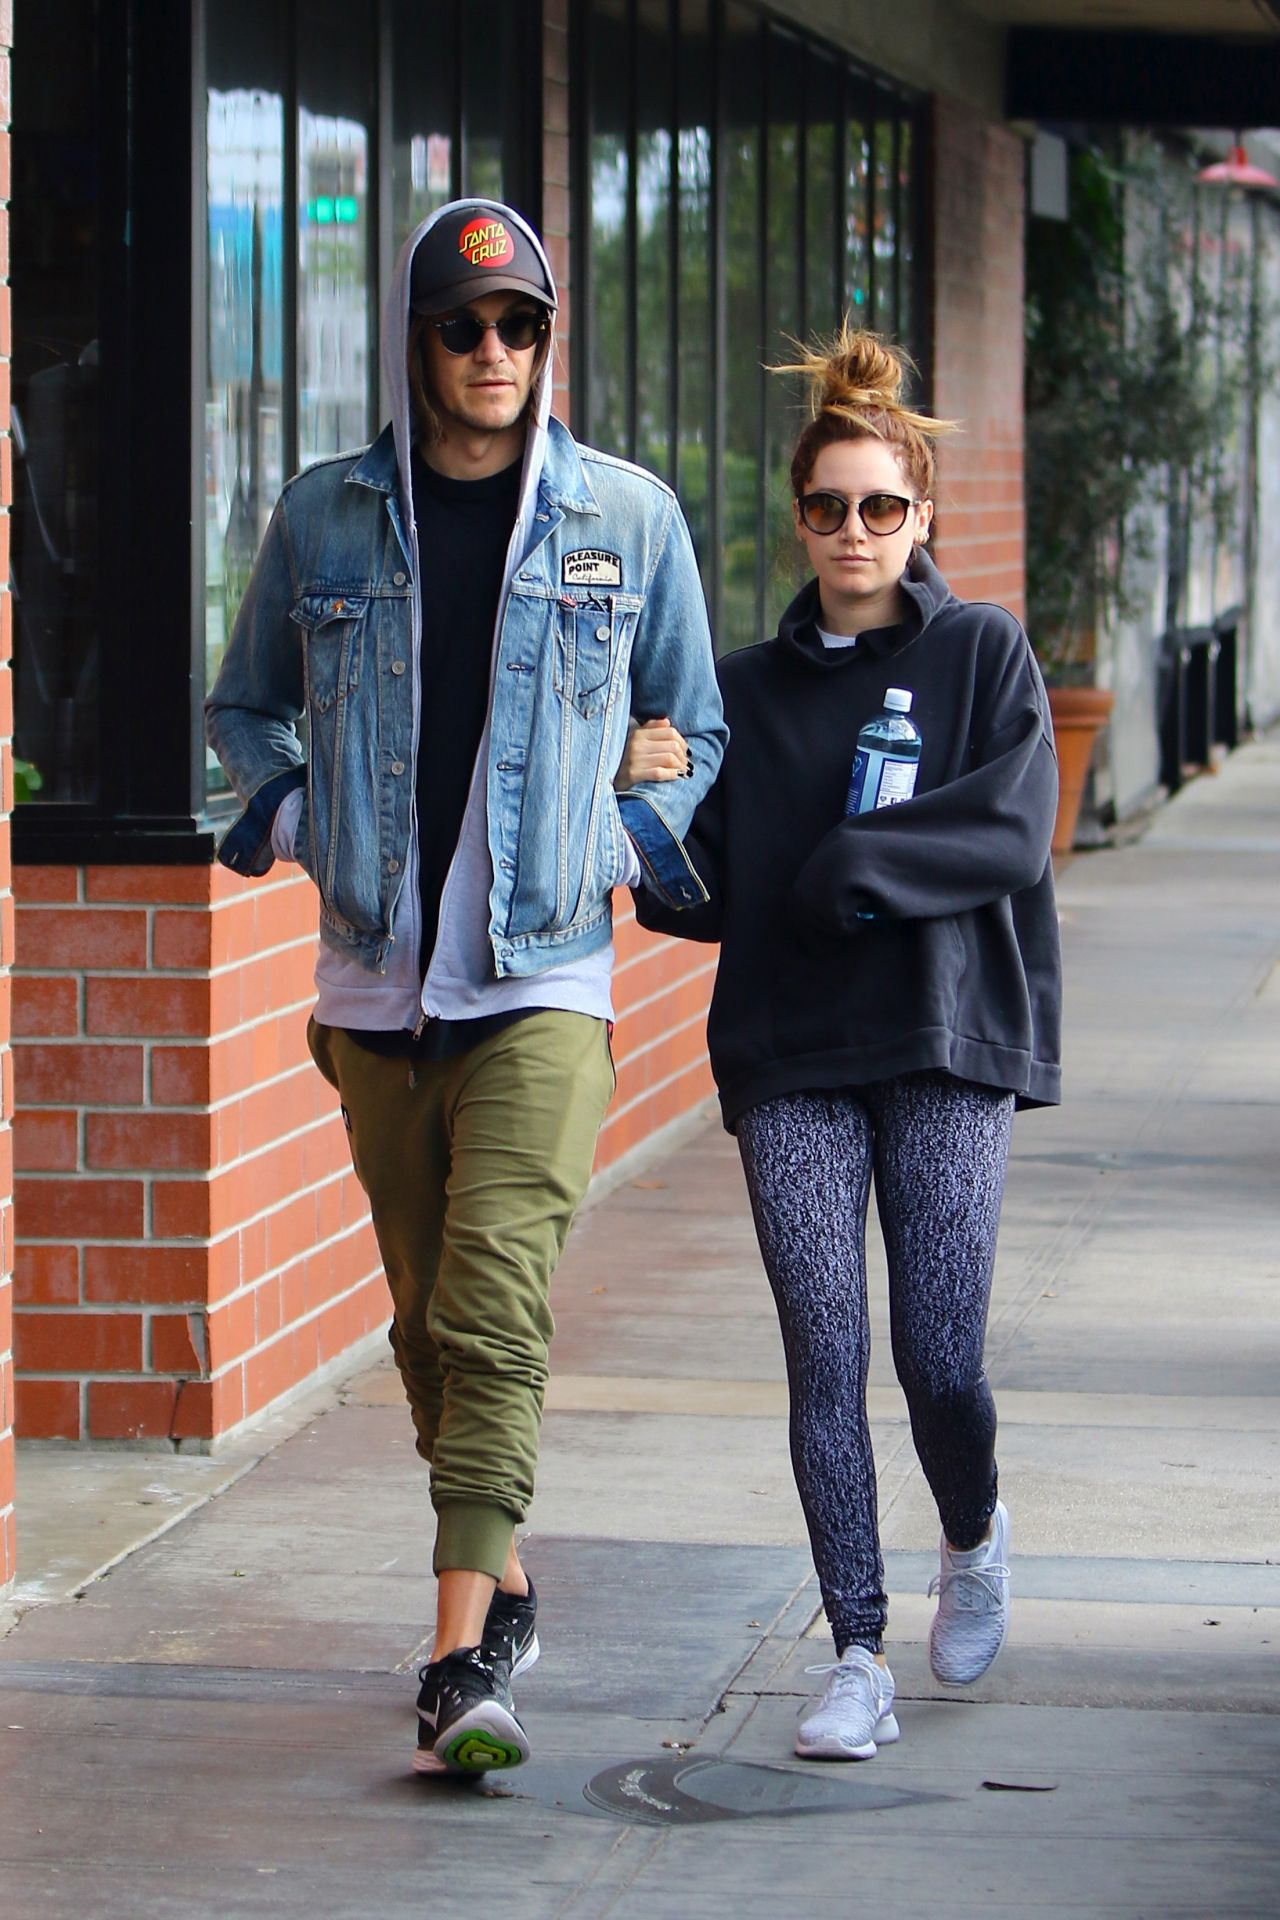 Ashley tisdale with christopher french in la nudes (69 photo), Twitter Celebrites fotos